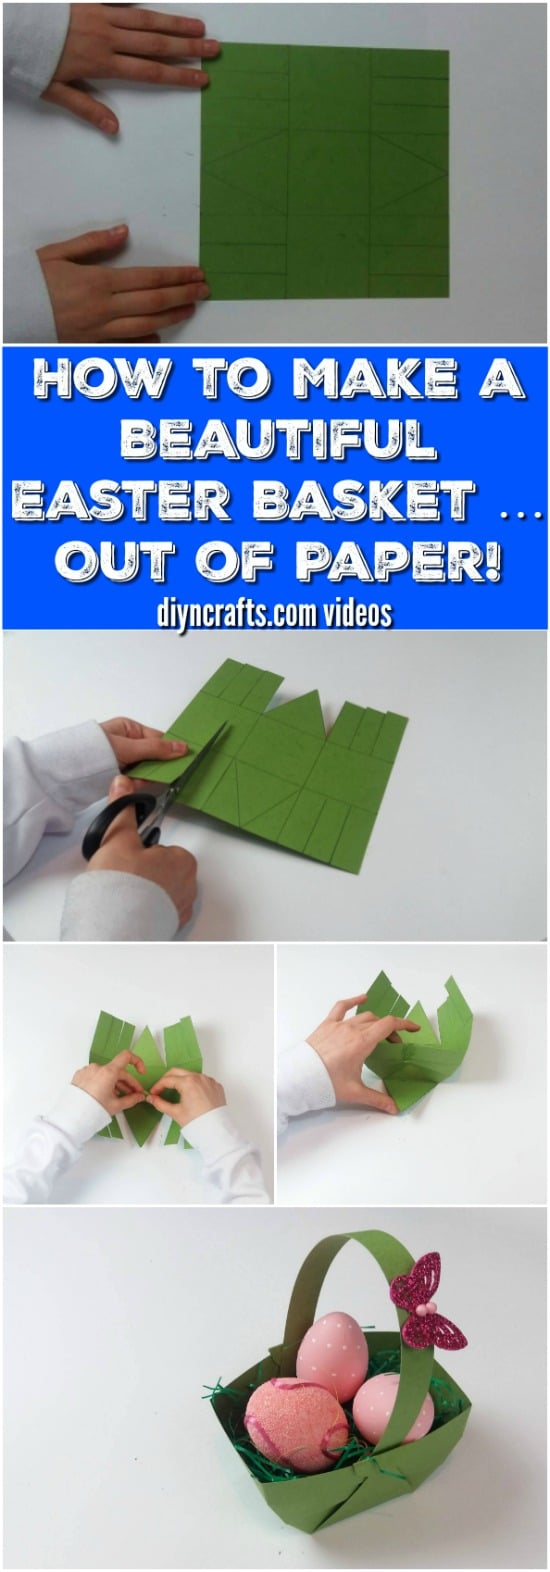 Here Is How to Make a Beautiful Easter Basket … Out of Paper!